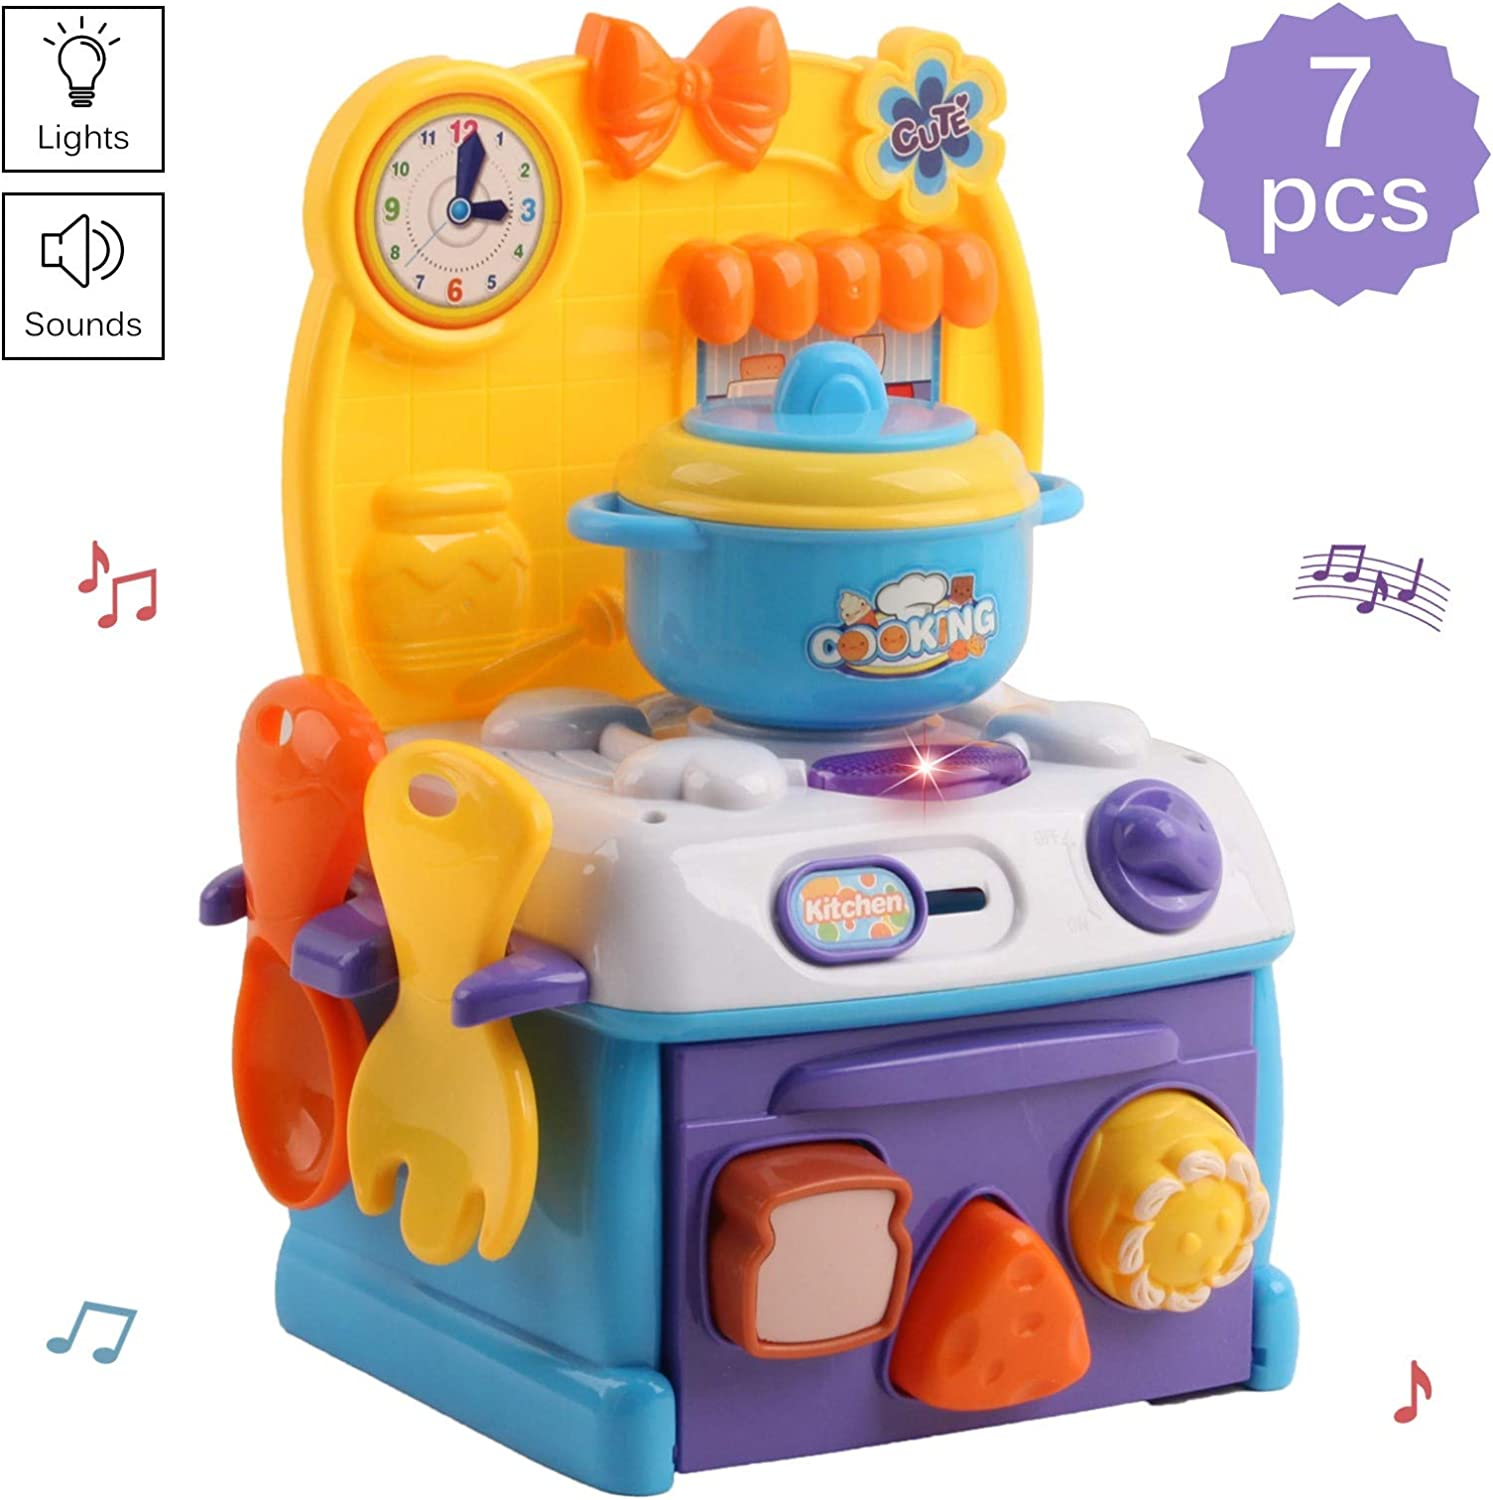 Vokodo Kids Kitchen Playset Compact Size With Light And Music Includes Oven Stove Pot And Food Pieces Pretend Play Chef Early Learning Preschool Cooking Toy Great Gift For Children Boys Girls Toddlers